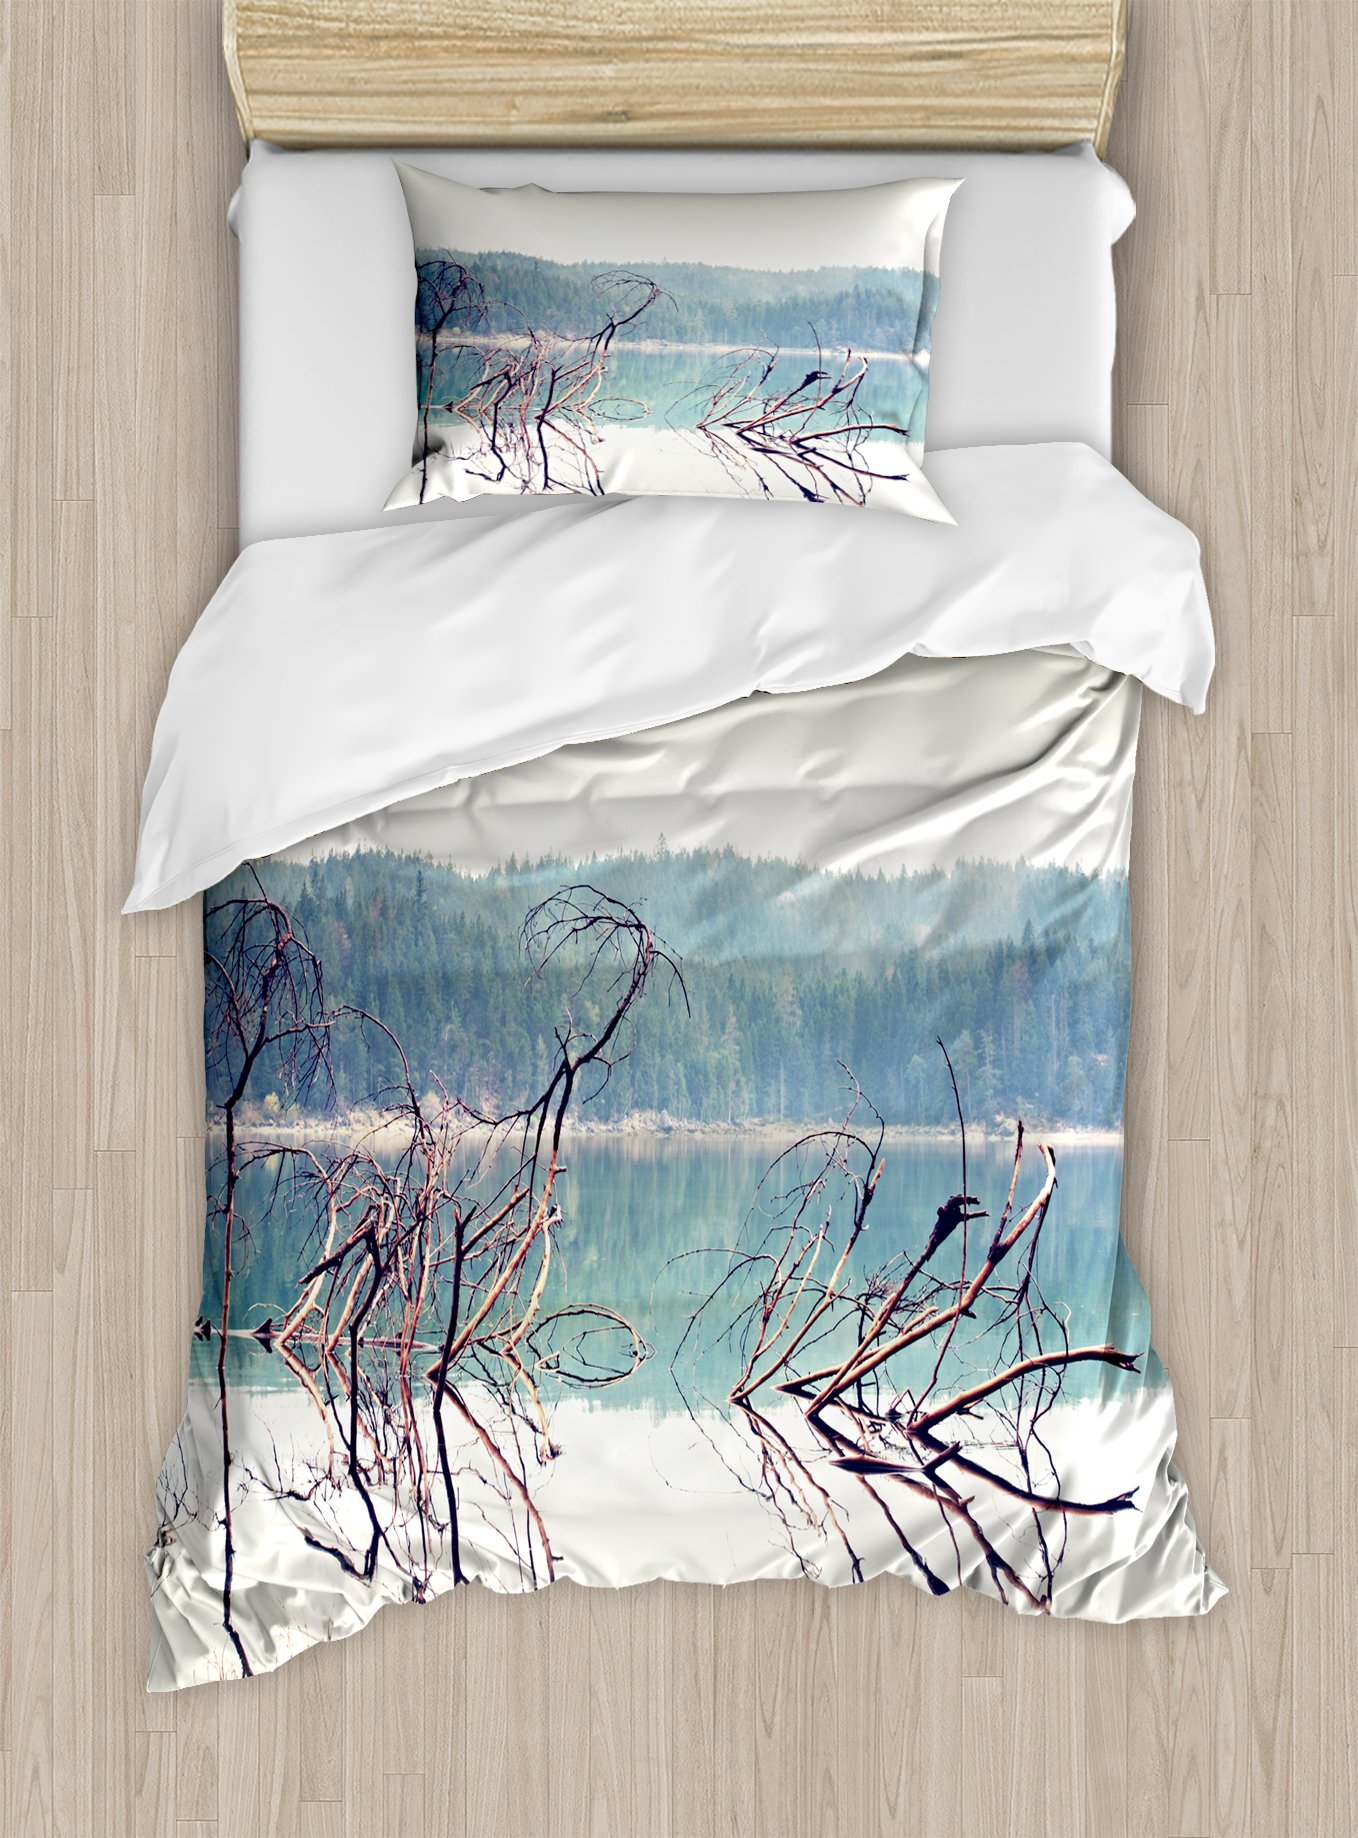 Ambesonne Driftwood Duvet Cover Set Twin Size, Nature Theme Branch of The Fallen Tree Near The Mountain Lake and The Forest, Decorative 2 Piece Bedding Set with 1 Pillow Sham, Cream Green